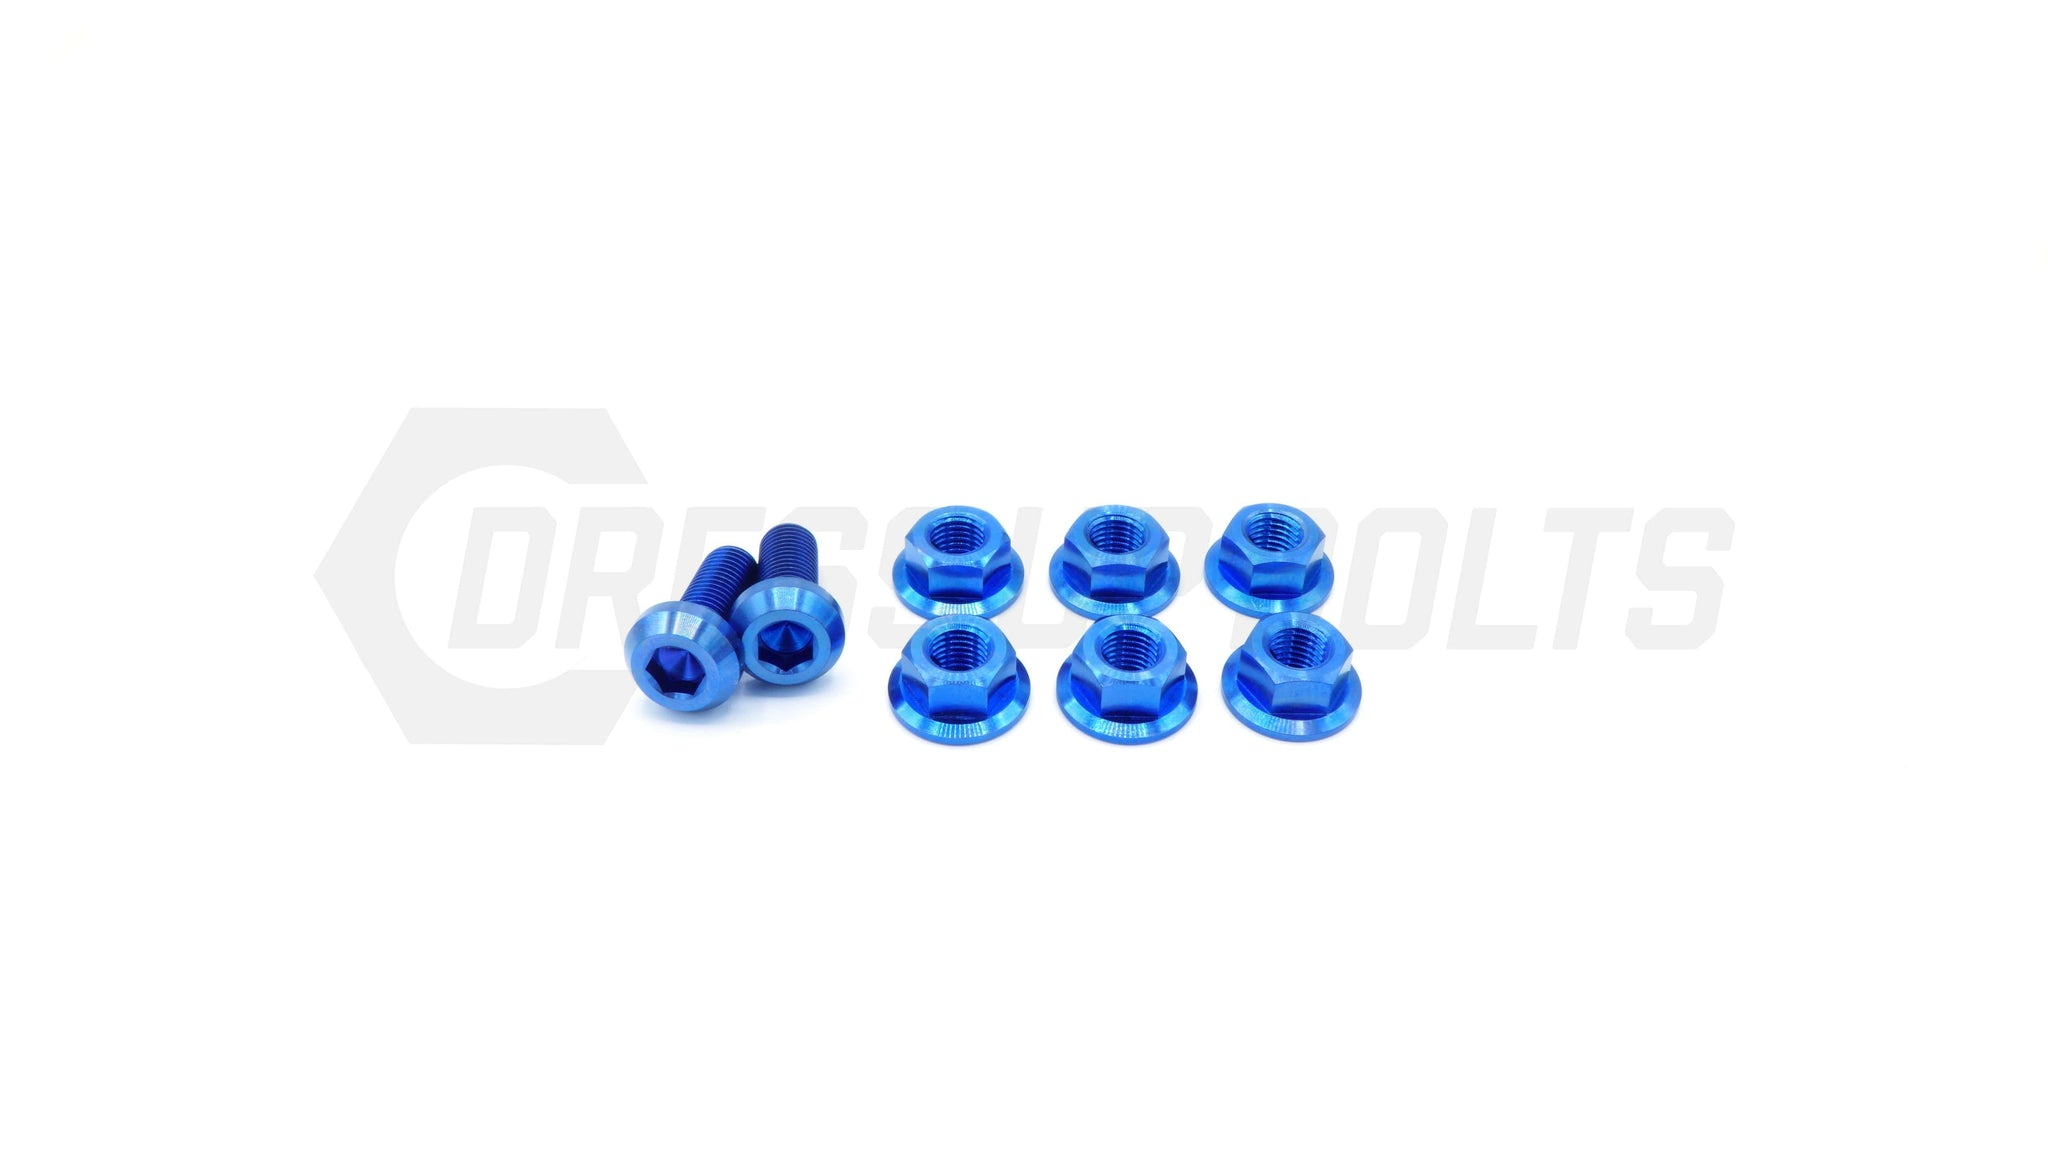 Mitsubishi Evo VIII (2003-2005) Titanium Dress Up Bolts Strut Tower Kit - DressUpBolts.com